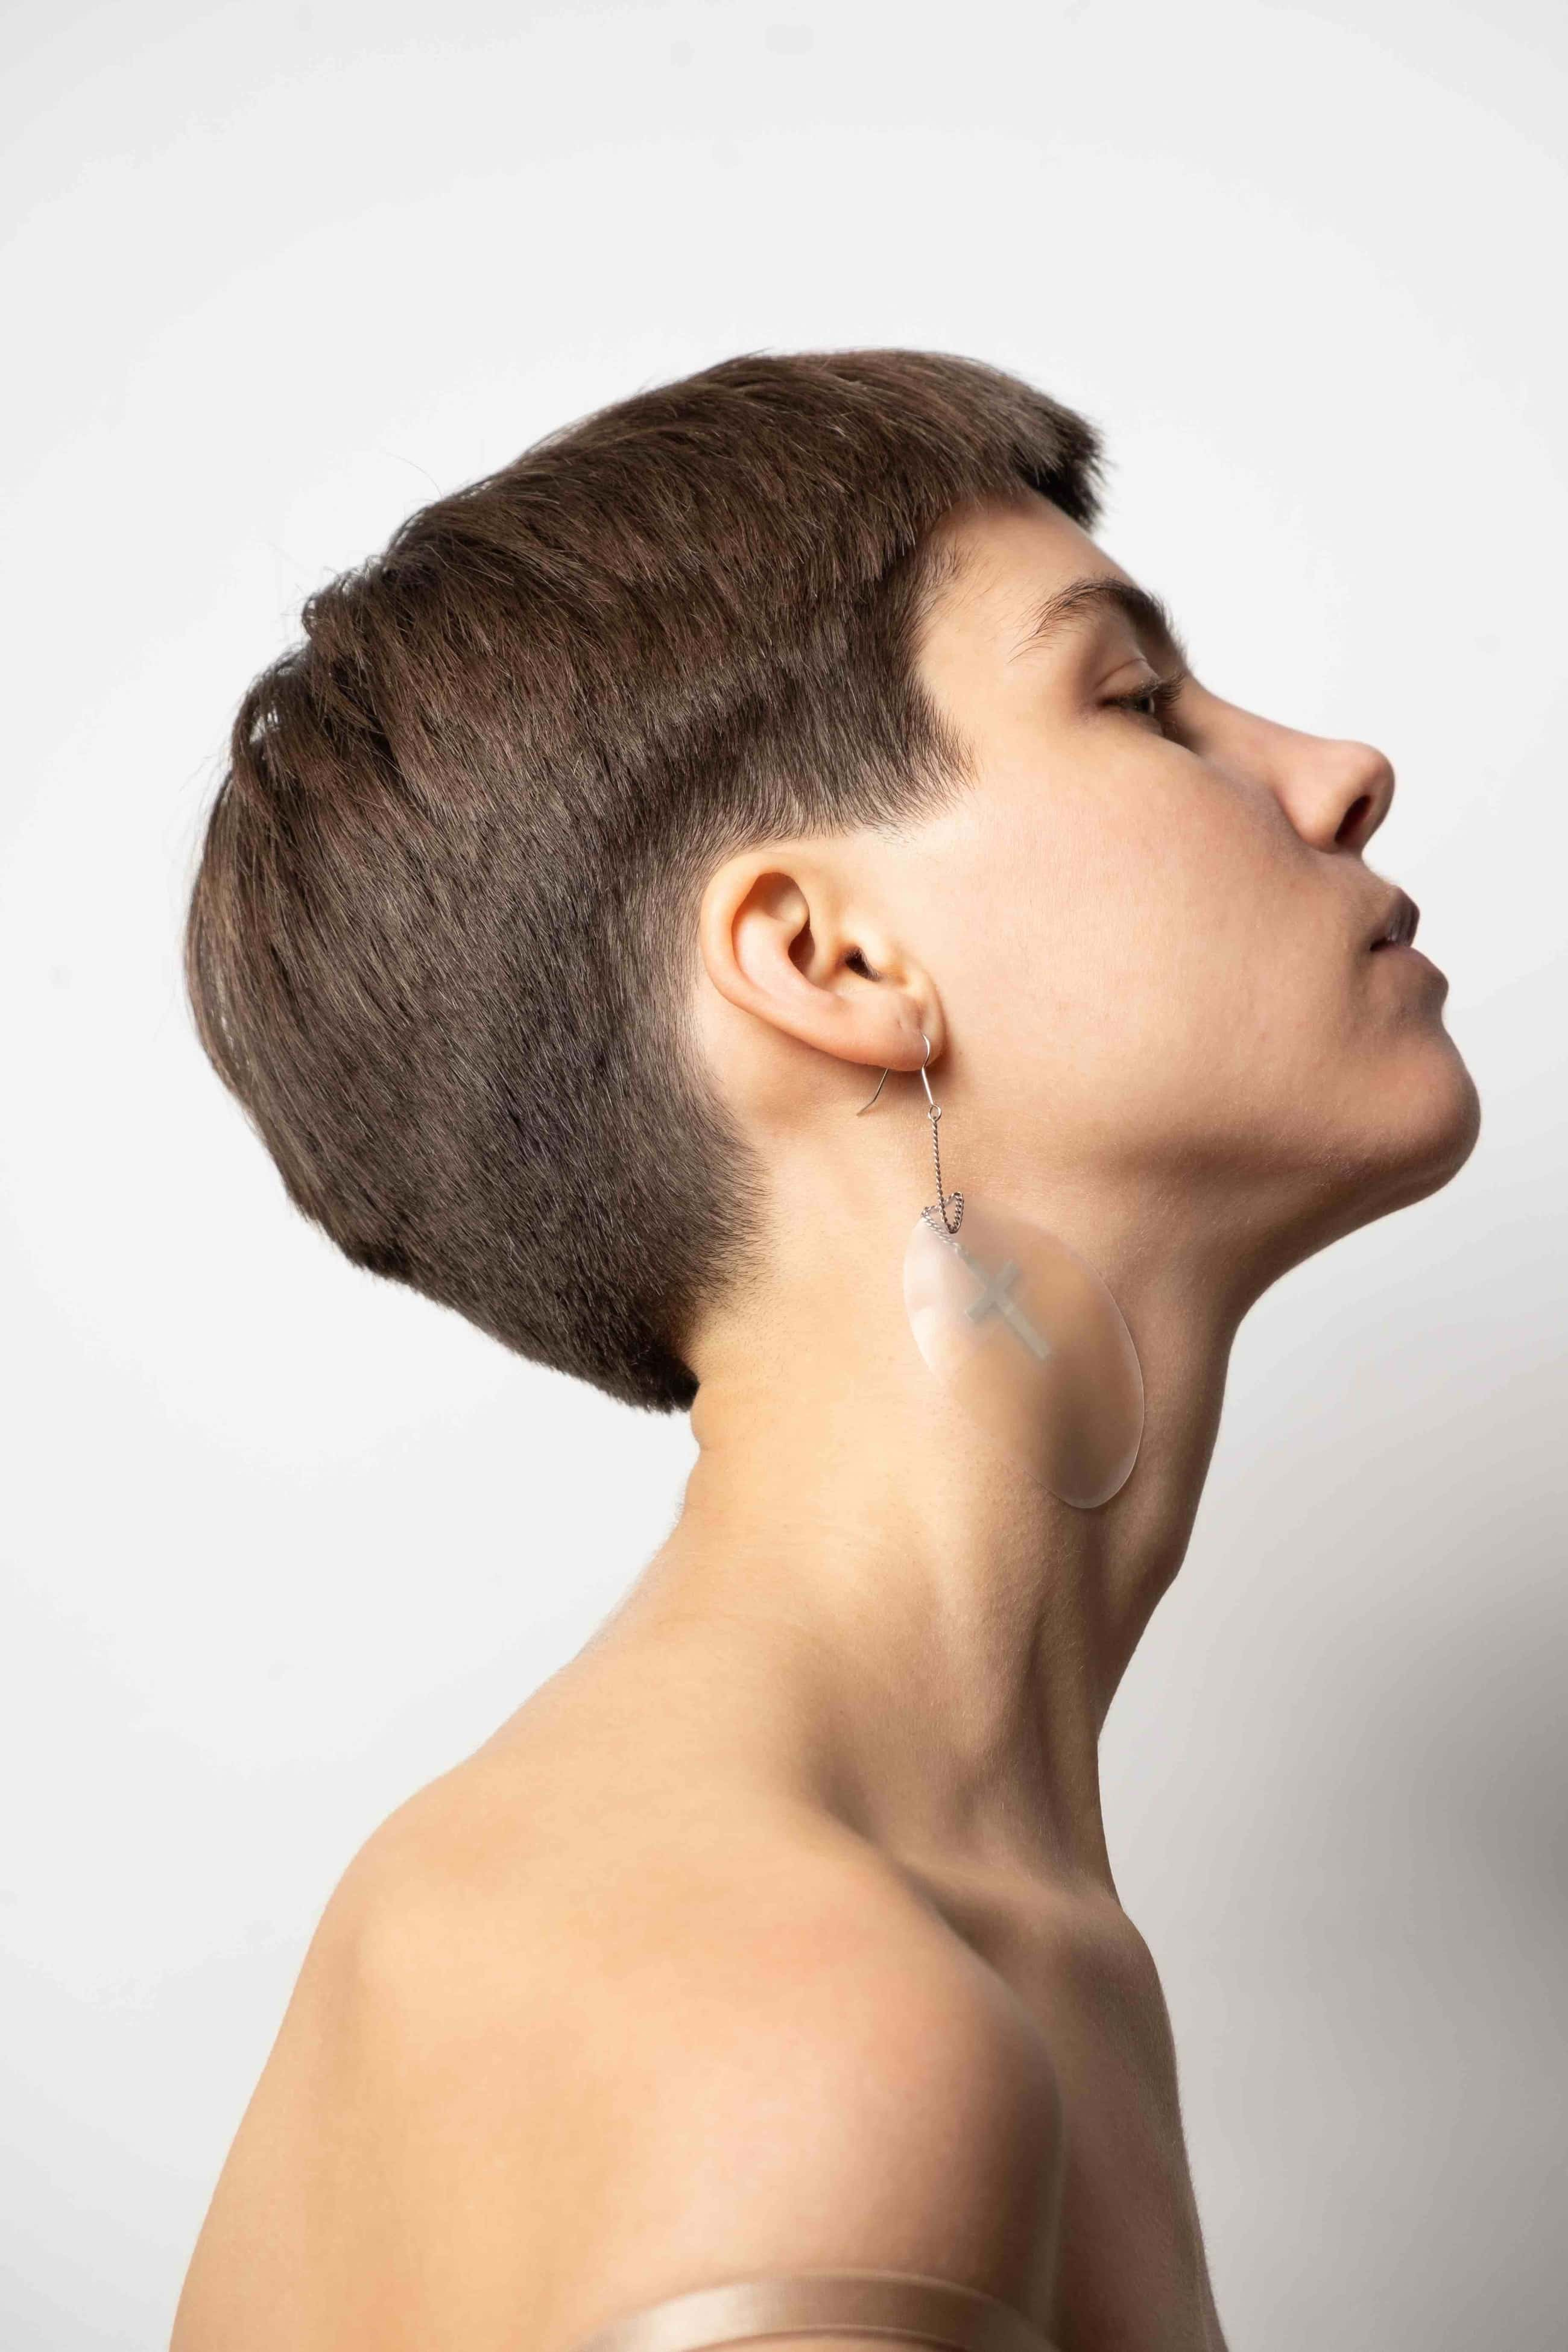 Model photographed from the side with art jewelry.